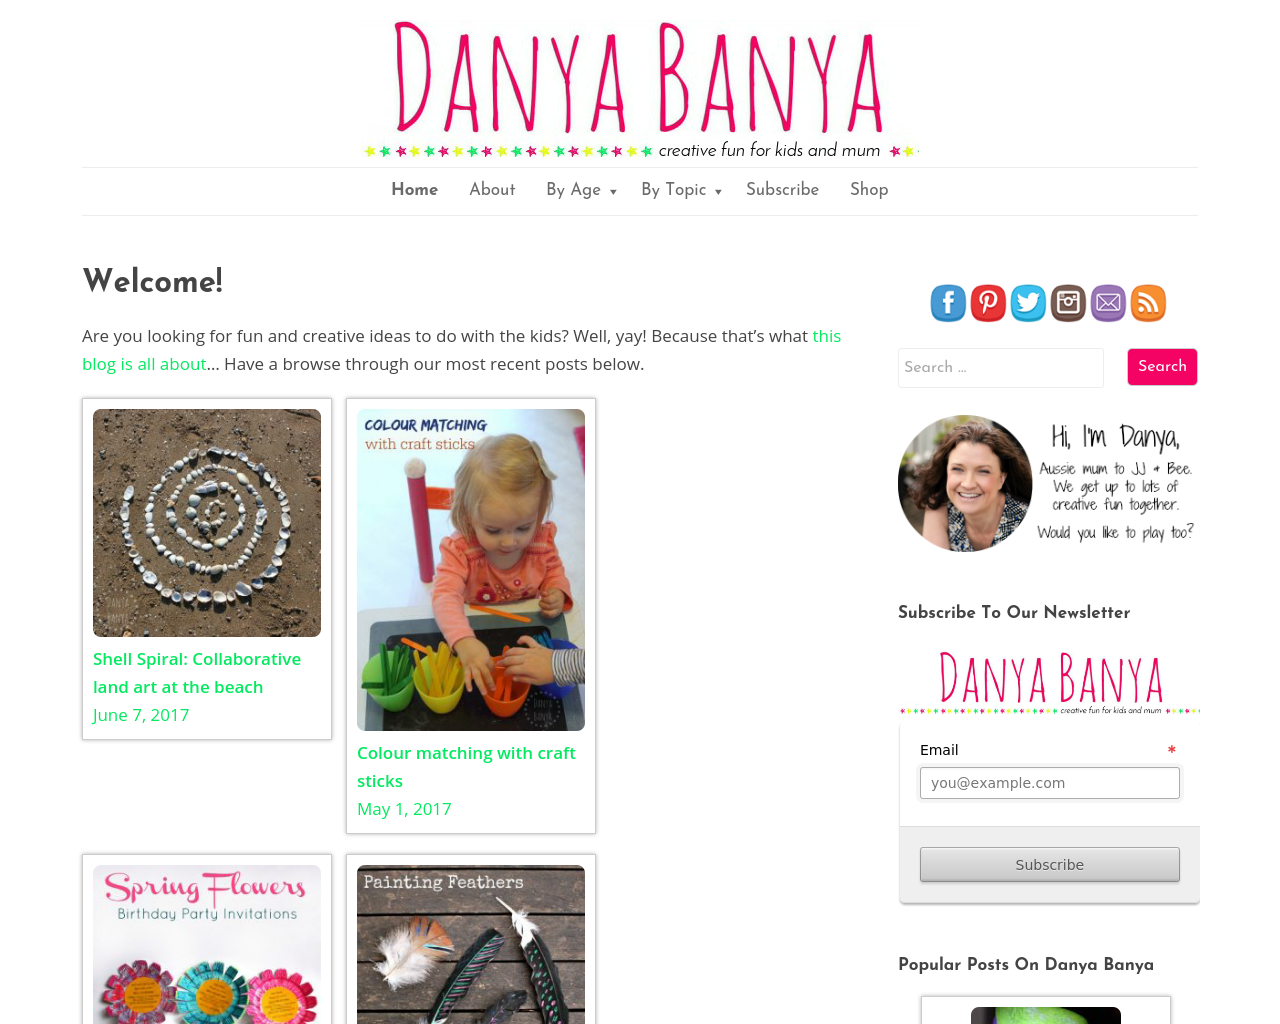 Danya-Banya-Advertising-Reviews-Pricing